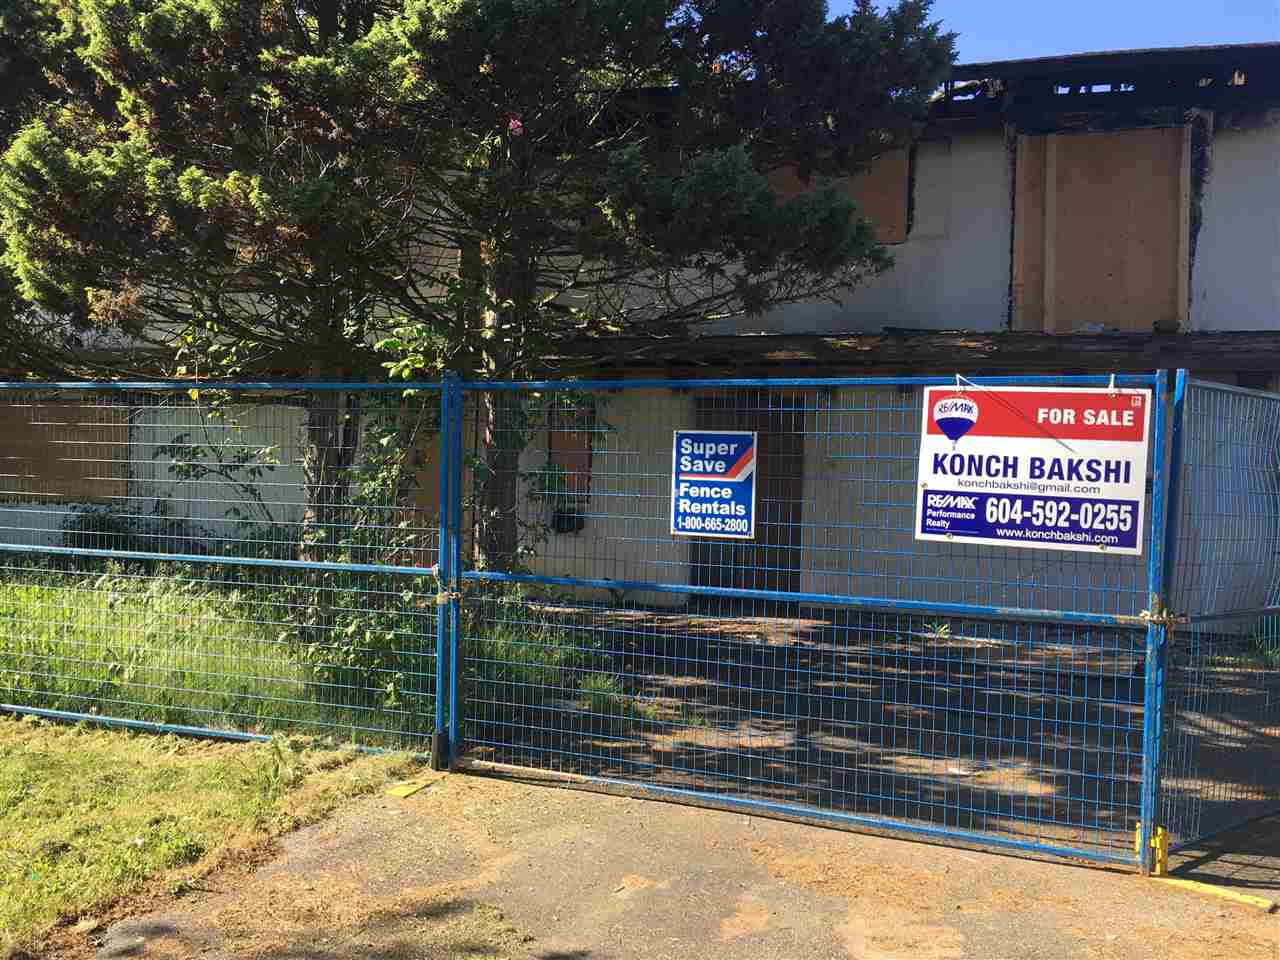 """To be sold """"AS IS"""". House has extensive fire damage. Great large  lot for building new family home. Quiet cul-de-sac backing onto school in a great neighborhood.  Measurements to be verified by Buyer if deemed important. Please do not trespass onto property."""